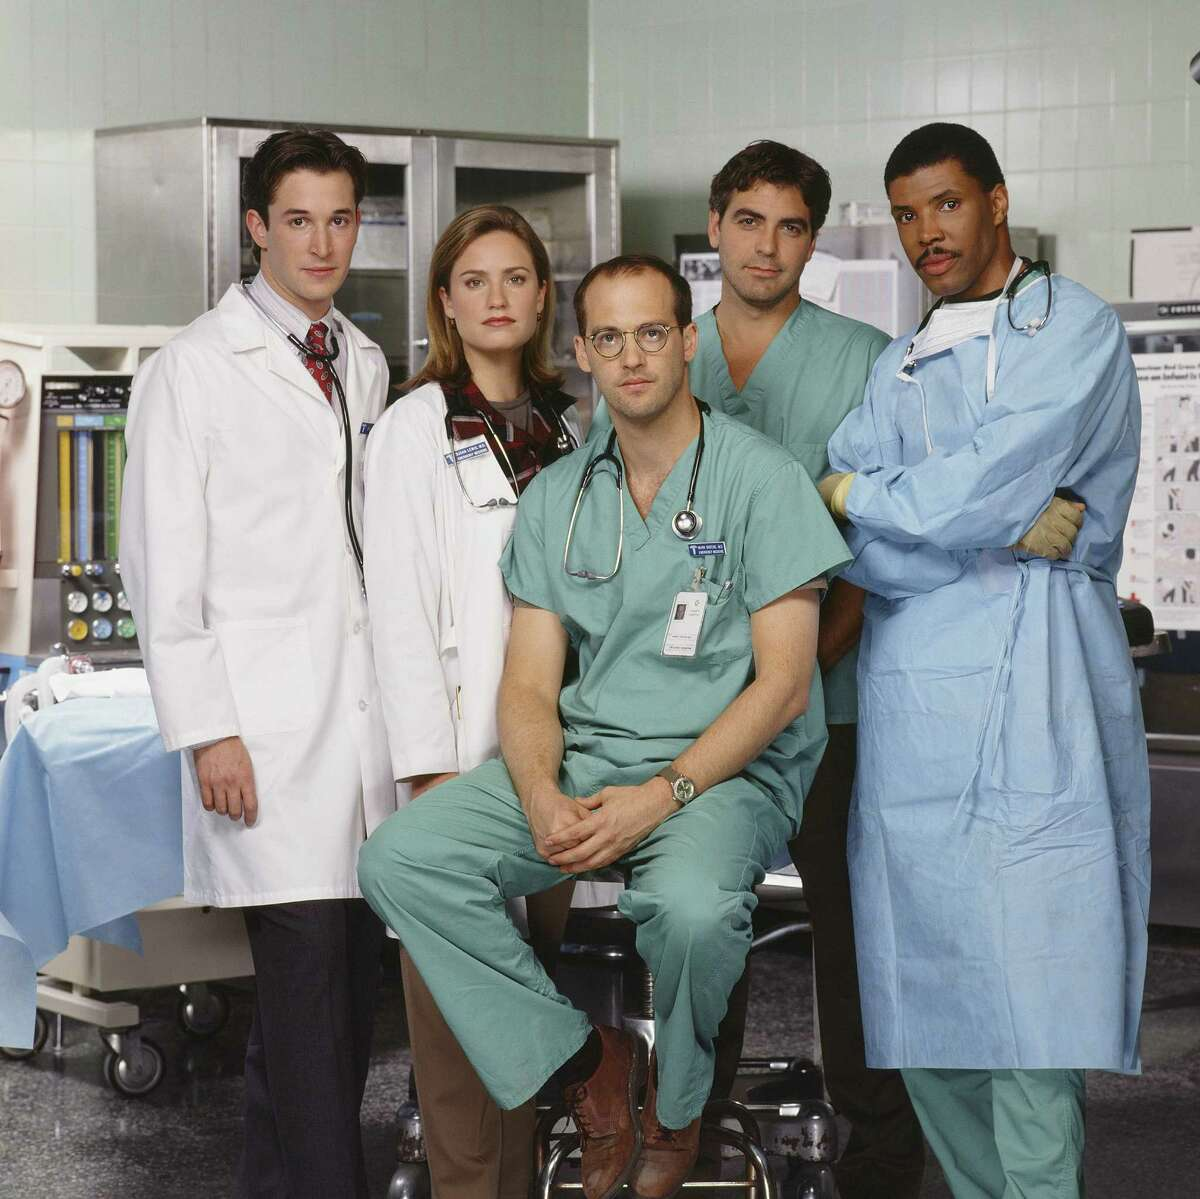 """""""ER"""" debuted on NBC on Sept. 19, 1994, ushering in one of the most popular medical dramas in TV history. Here's a look at what the cast is up to now, in honor of the 20th anniversary of """"ER's"""" premiere. Pictured from Season 1 (l-r): Noah Wyle as Dr. John Carter; Sherry Stringfield as Dr. Susan Lewis; Anthony Edwards as Dr. Mark Greene; George Clooney as Dr. Doug Ross; and Eriq La Salle as Dr. Peter Benton."""